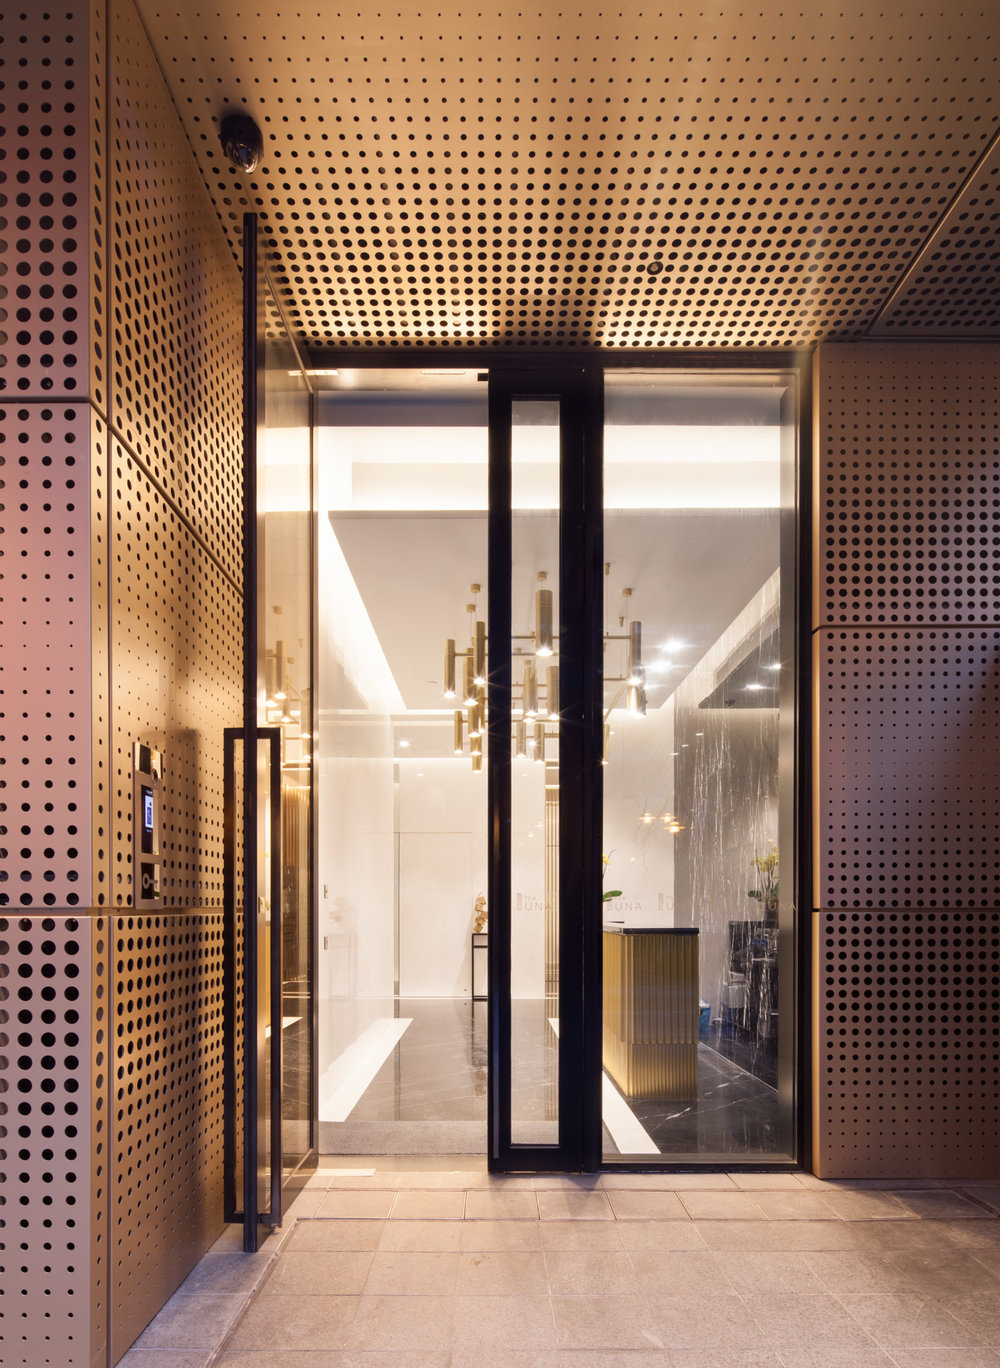 Luna_JM01_Reception-0157_ Anahita Chouhan Architect Interior designer Architects.jpg